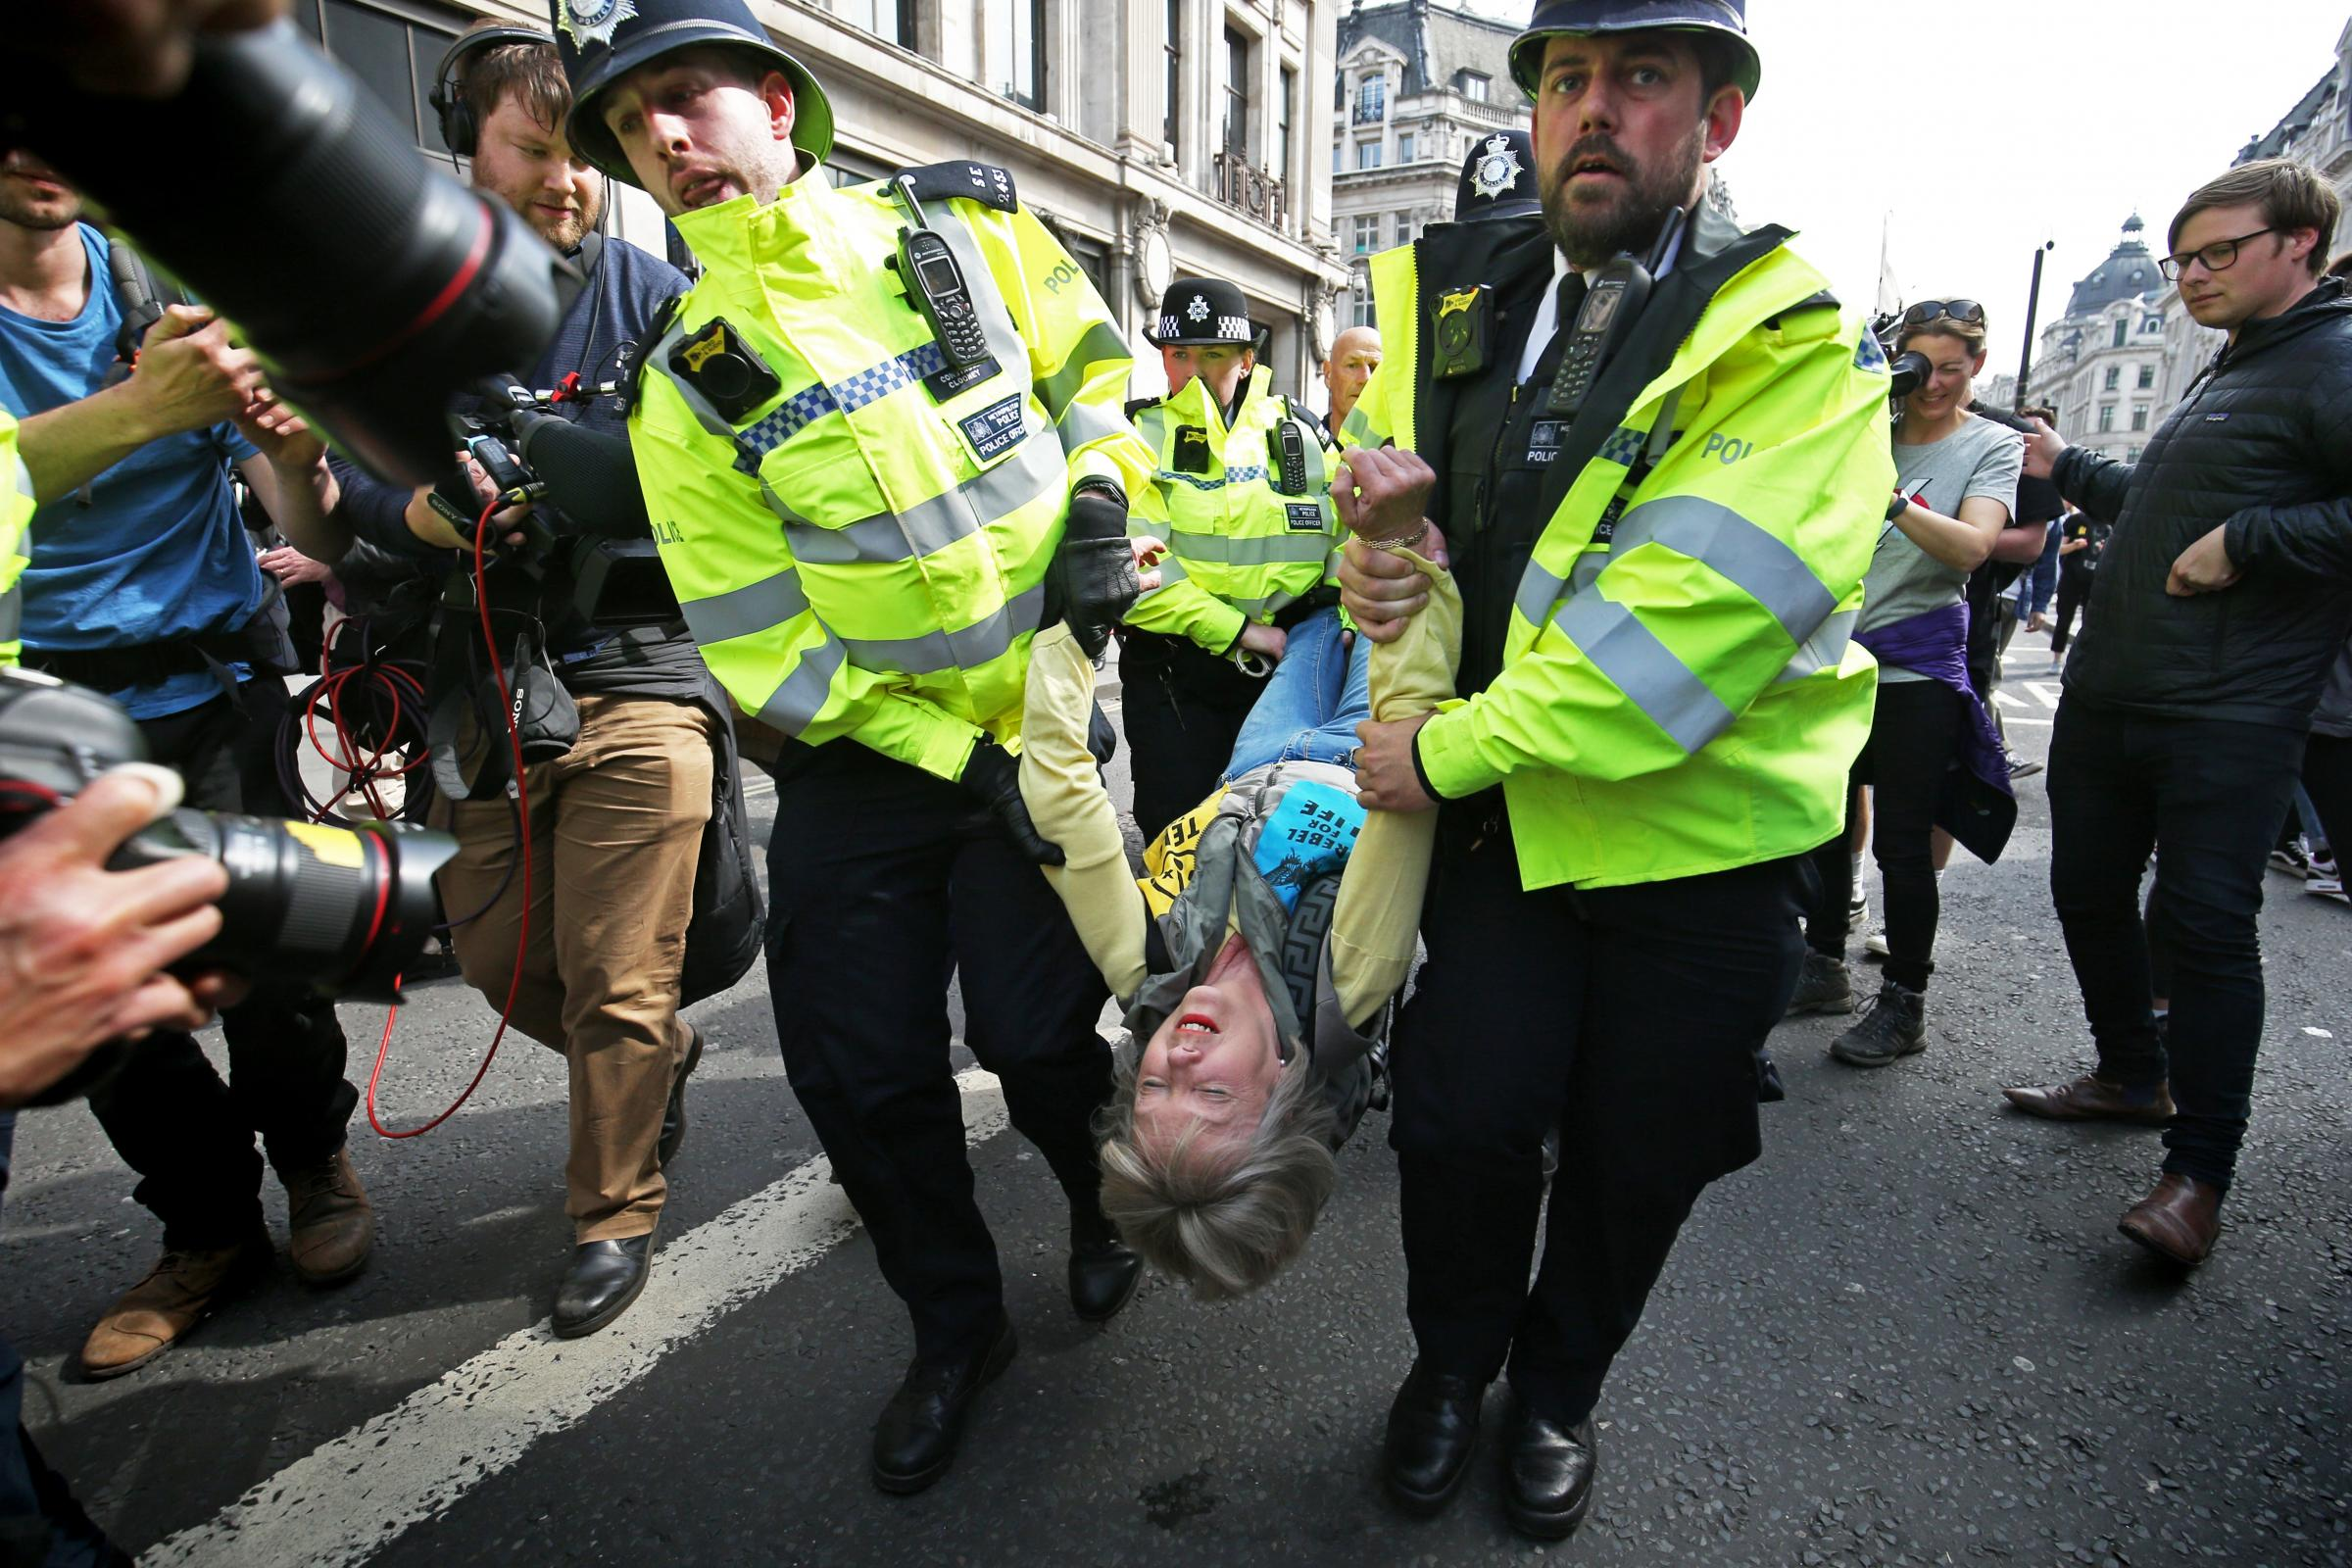 An Extinction Rebellion demonstrator is carried away by police at Oxford Circus